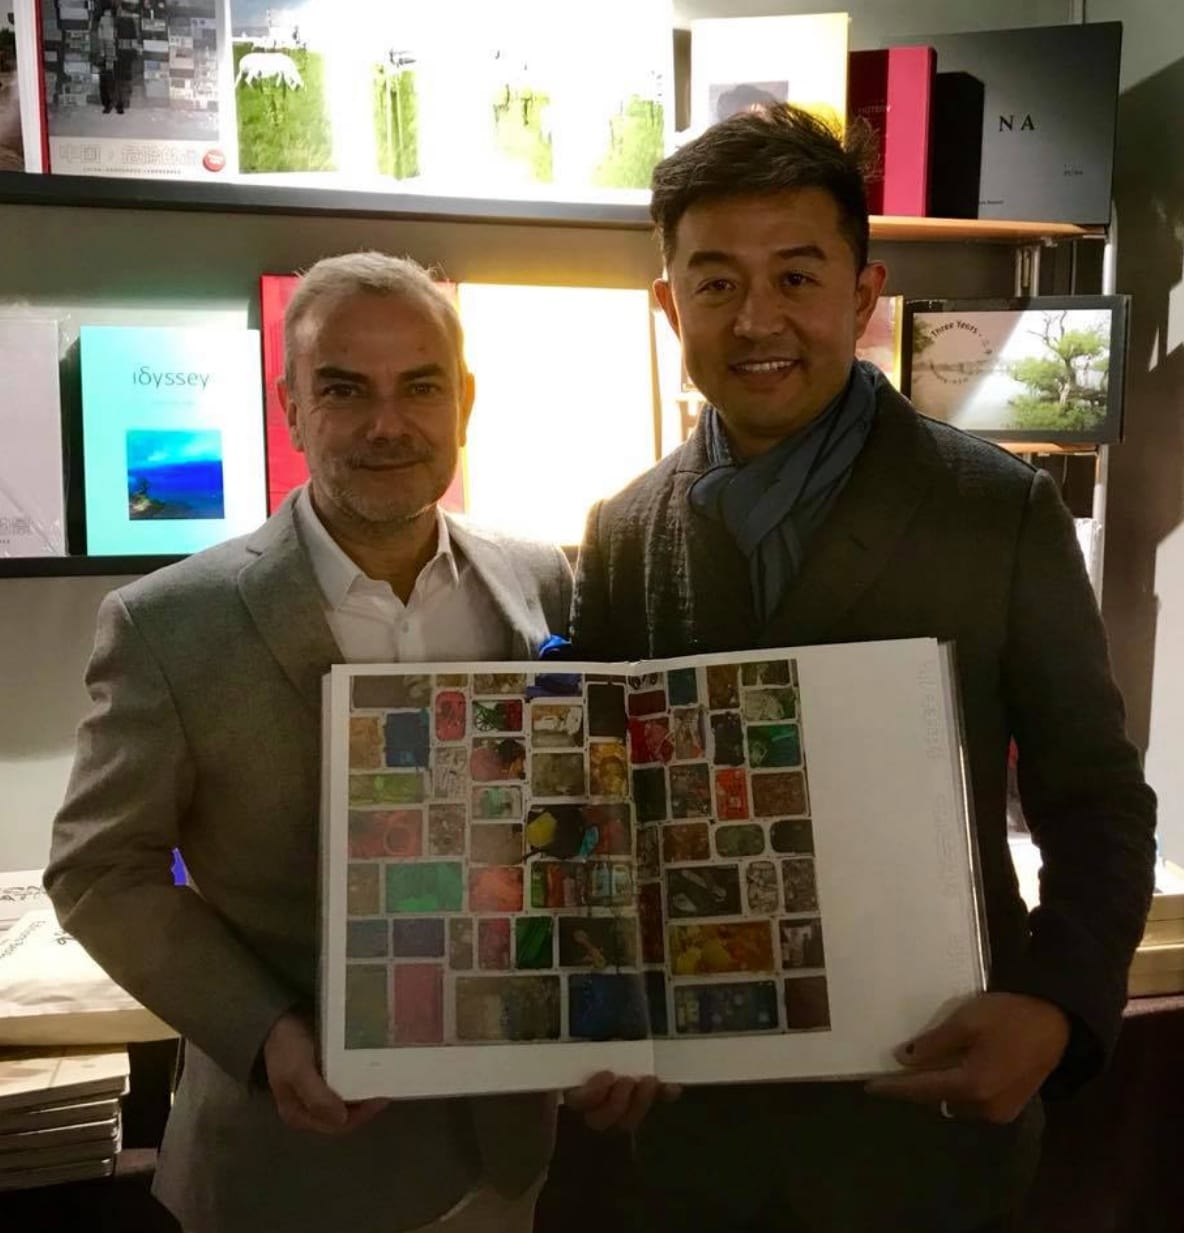 It was at paris Photo, #LiuBolin visited me for signature of our las photobook «China Dangerous Landscapes» a #LimitedEdition of 800 copies with a #signed c print by the artist, only 75€ #ArtOfPerfection, #China #EditionsBessard